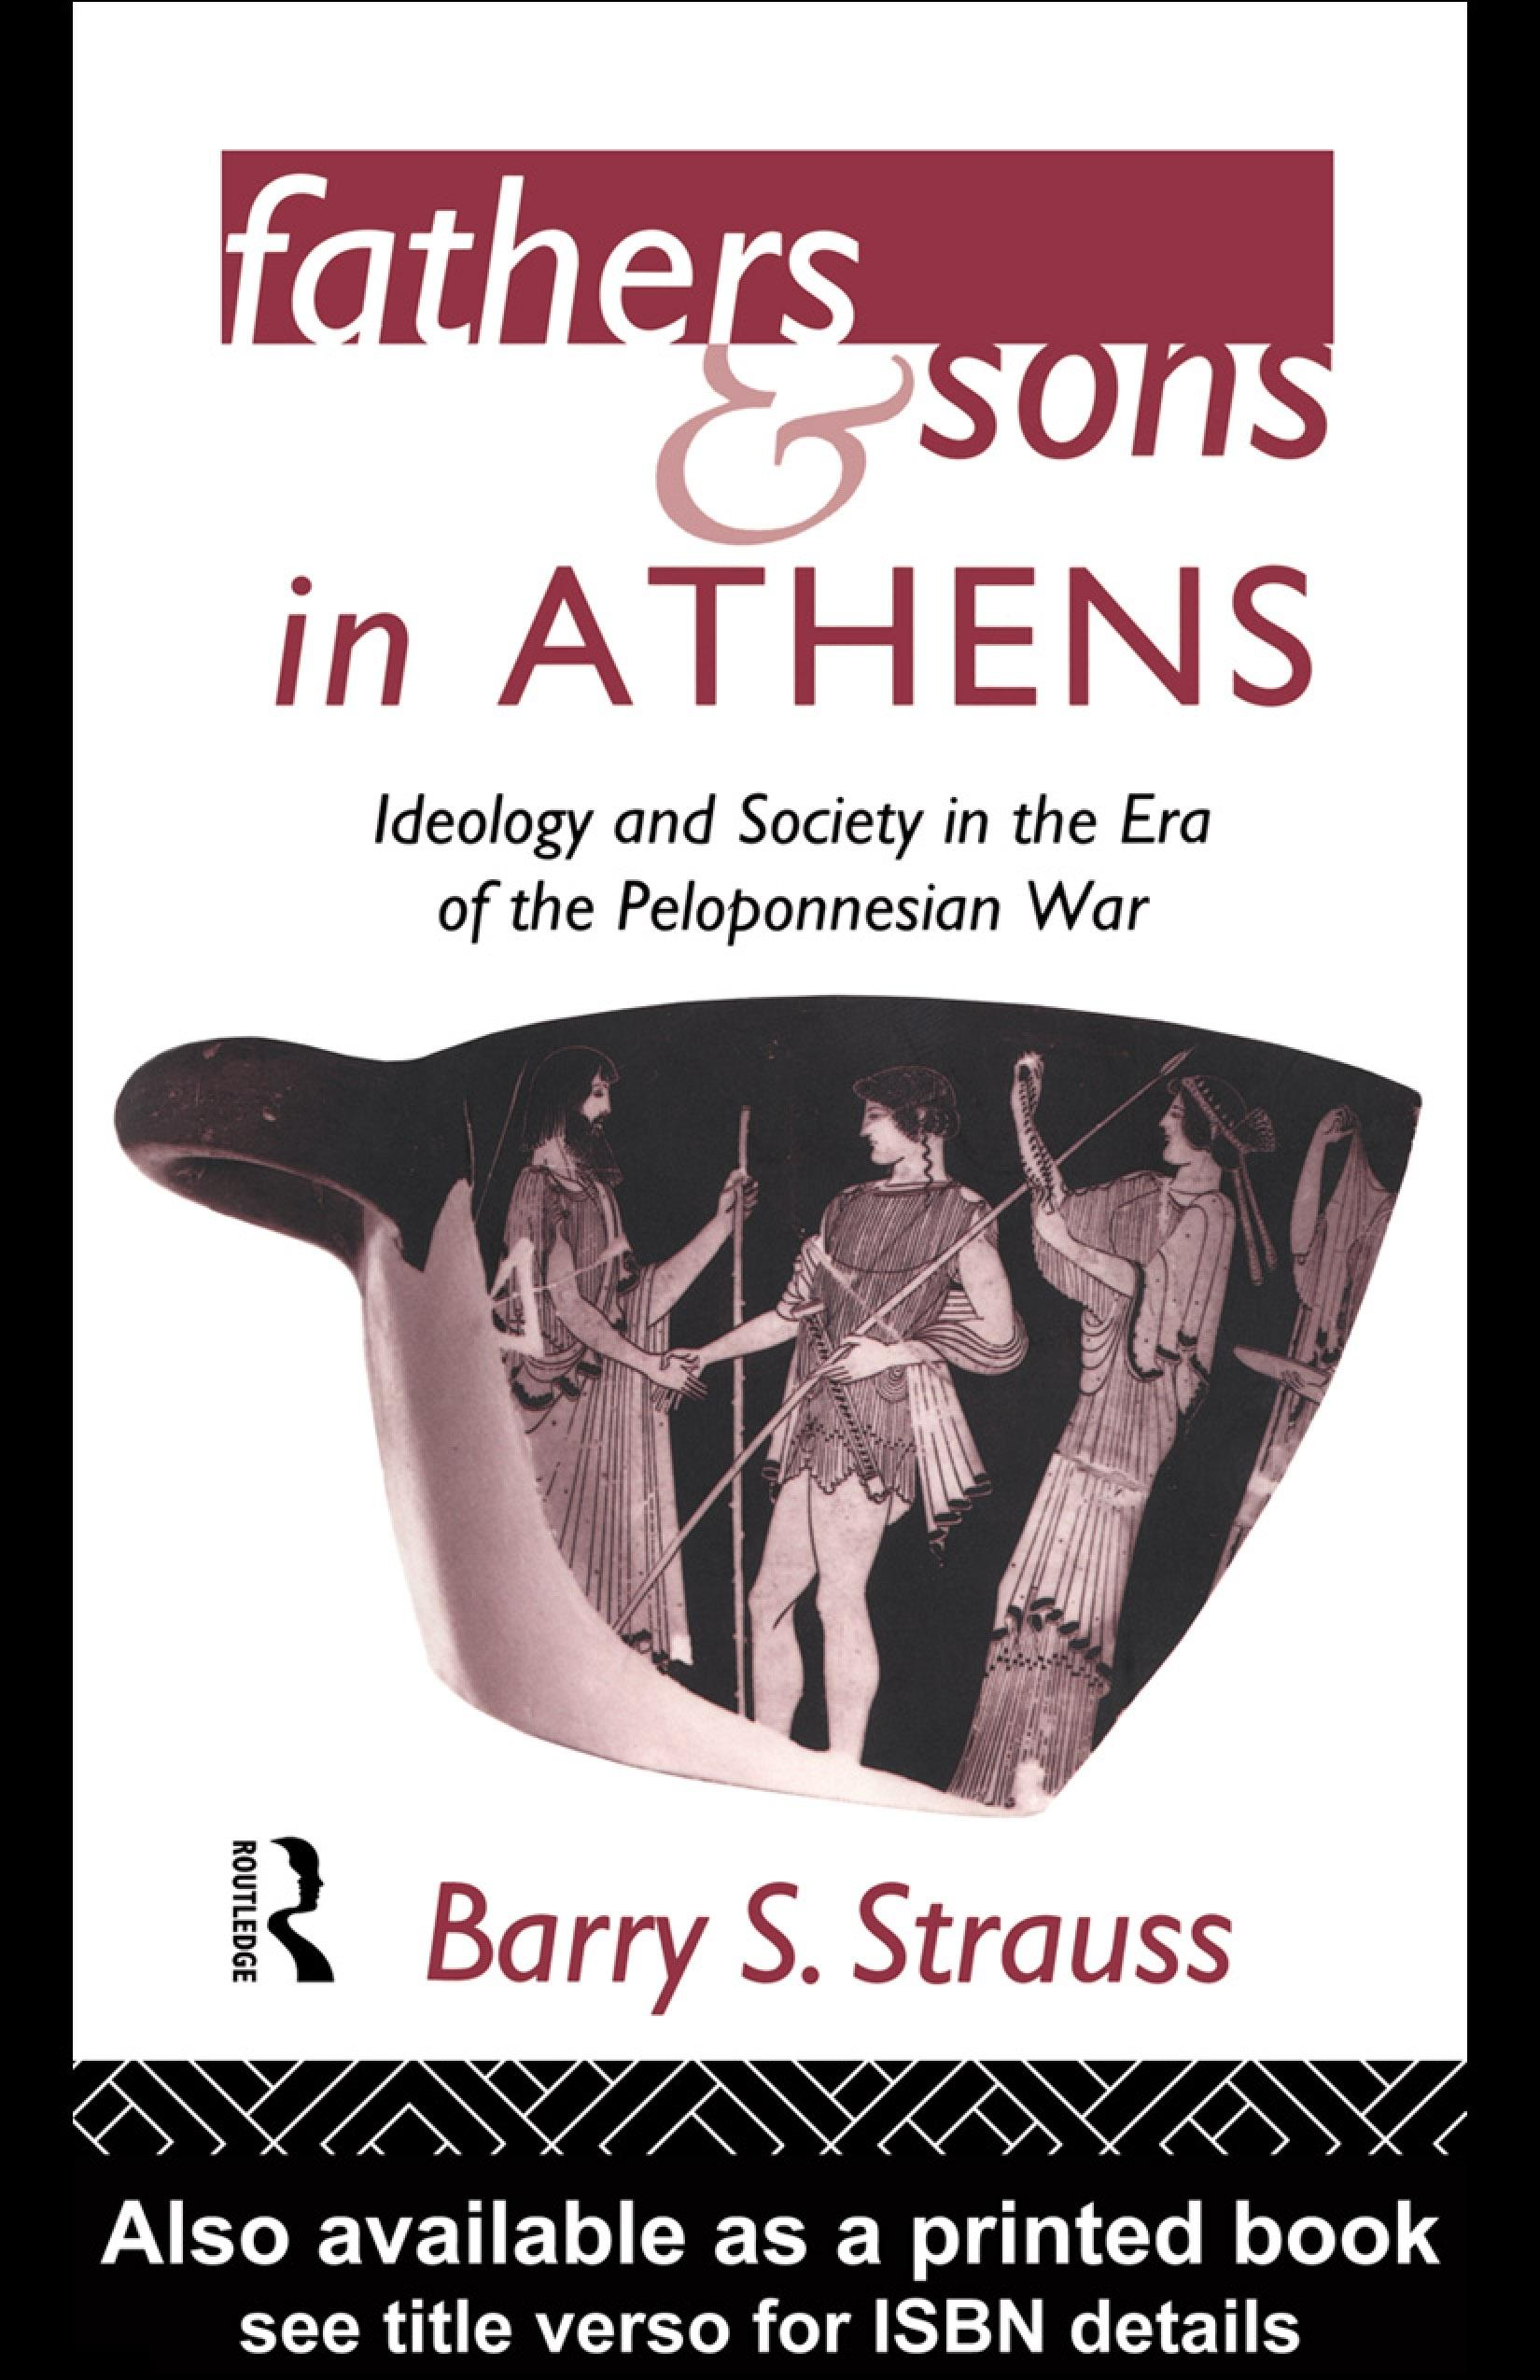 Fathers and Sons in Athens: Ideology and Society in the Era of the Peloponnesian War EB9780203034910